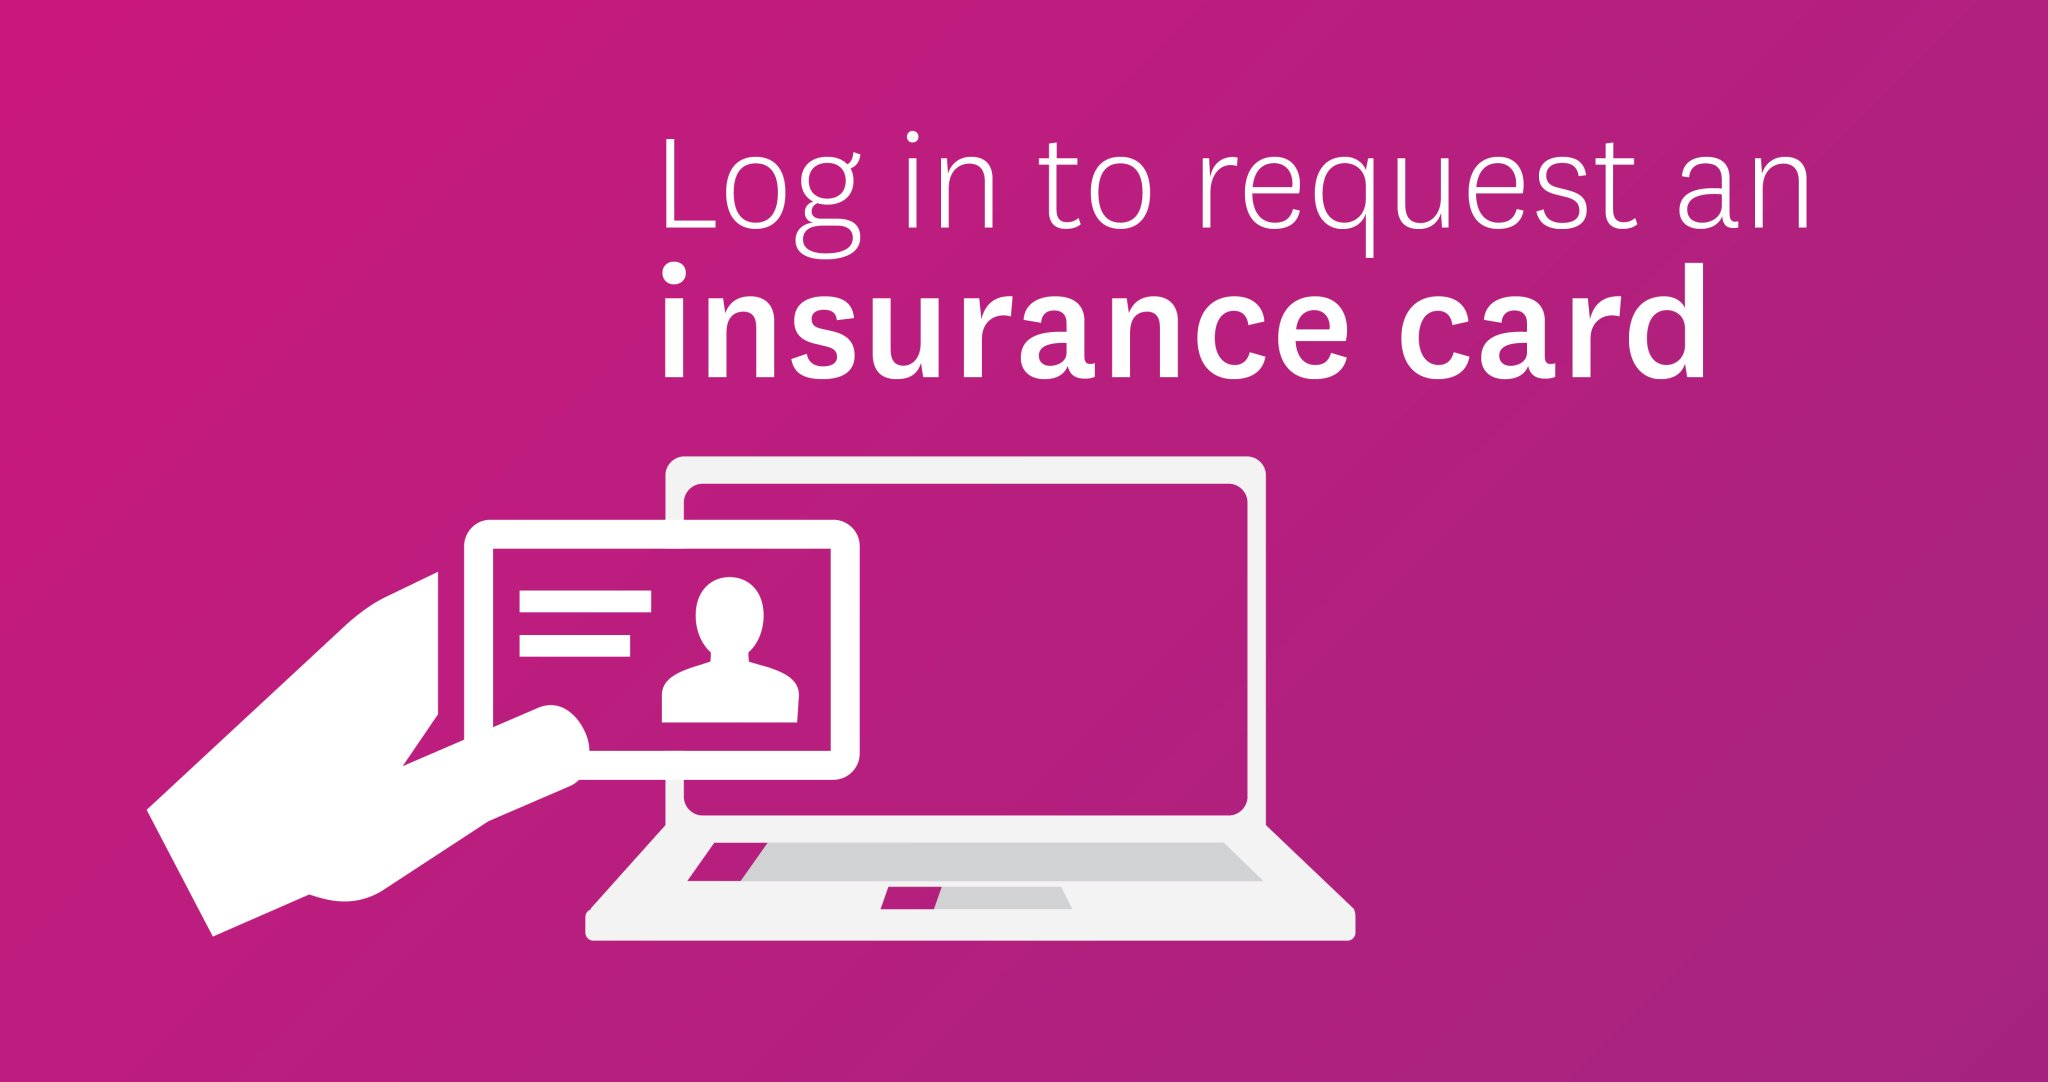 Ambetter From Superior Healthplan On Twitter Access Your Secure Member Portal To Easily Request An Insurance Card Https T Co Laggx4o74w